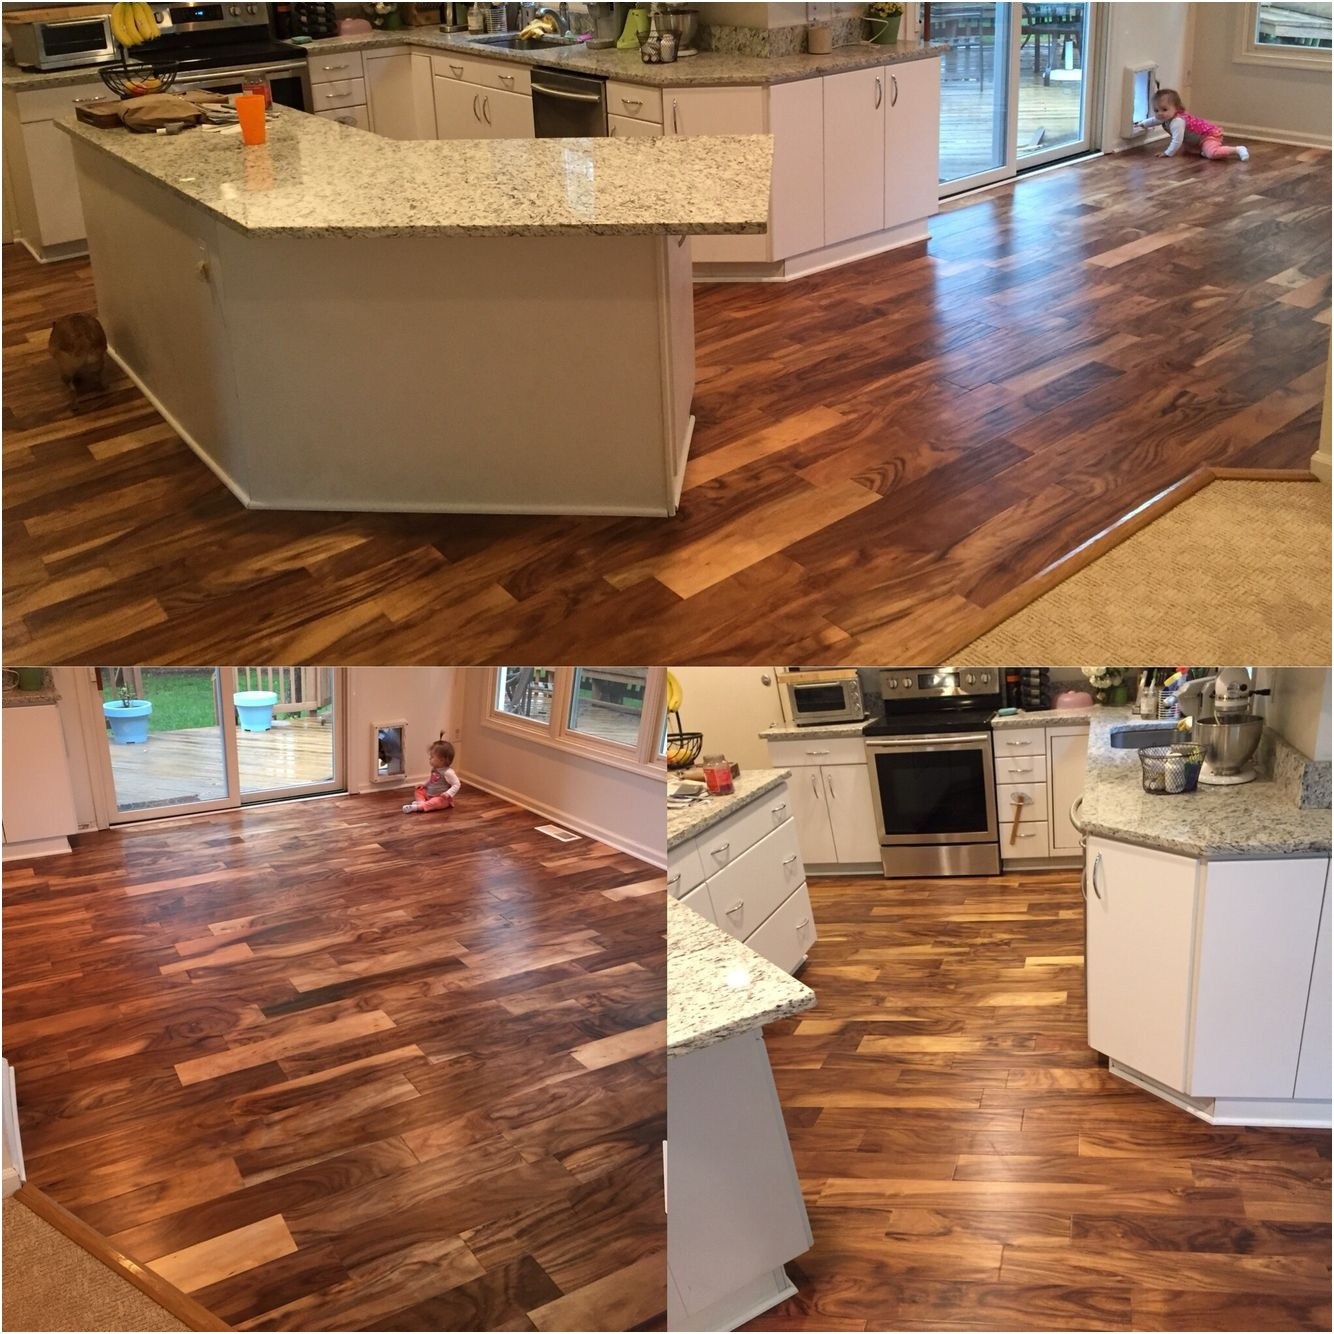 acacia hardwood flooring lumber liquidators of how to replace laminate flooring lovely tobacco road acacia by for how to replace laminate flooring lovely tobacco road acacia by lumber liquidators in our white kitchen